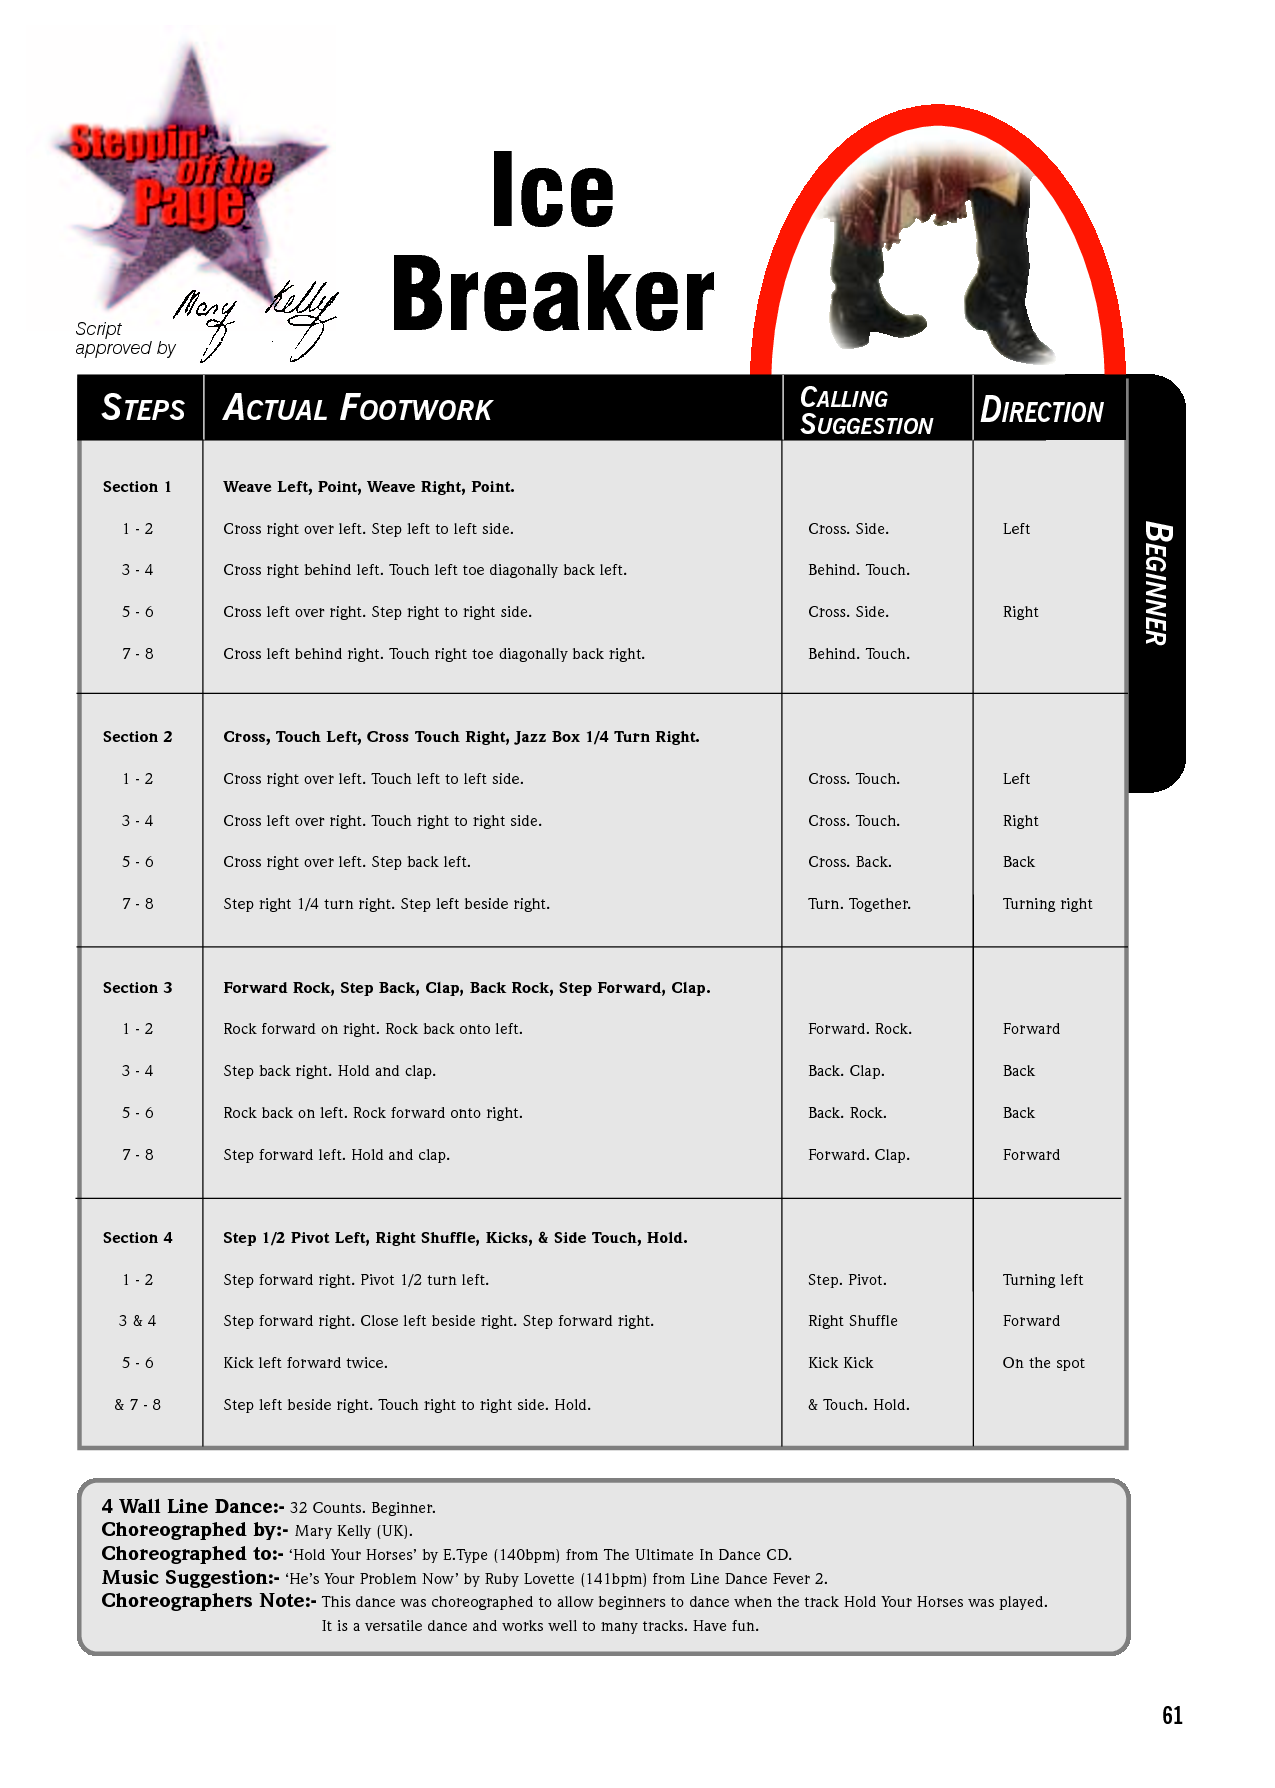 worksheet Icebreaker Worksheets icebreakers activities worksheet 6 science icebreaker spider worksheet